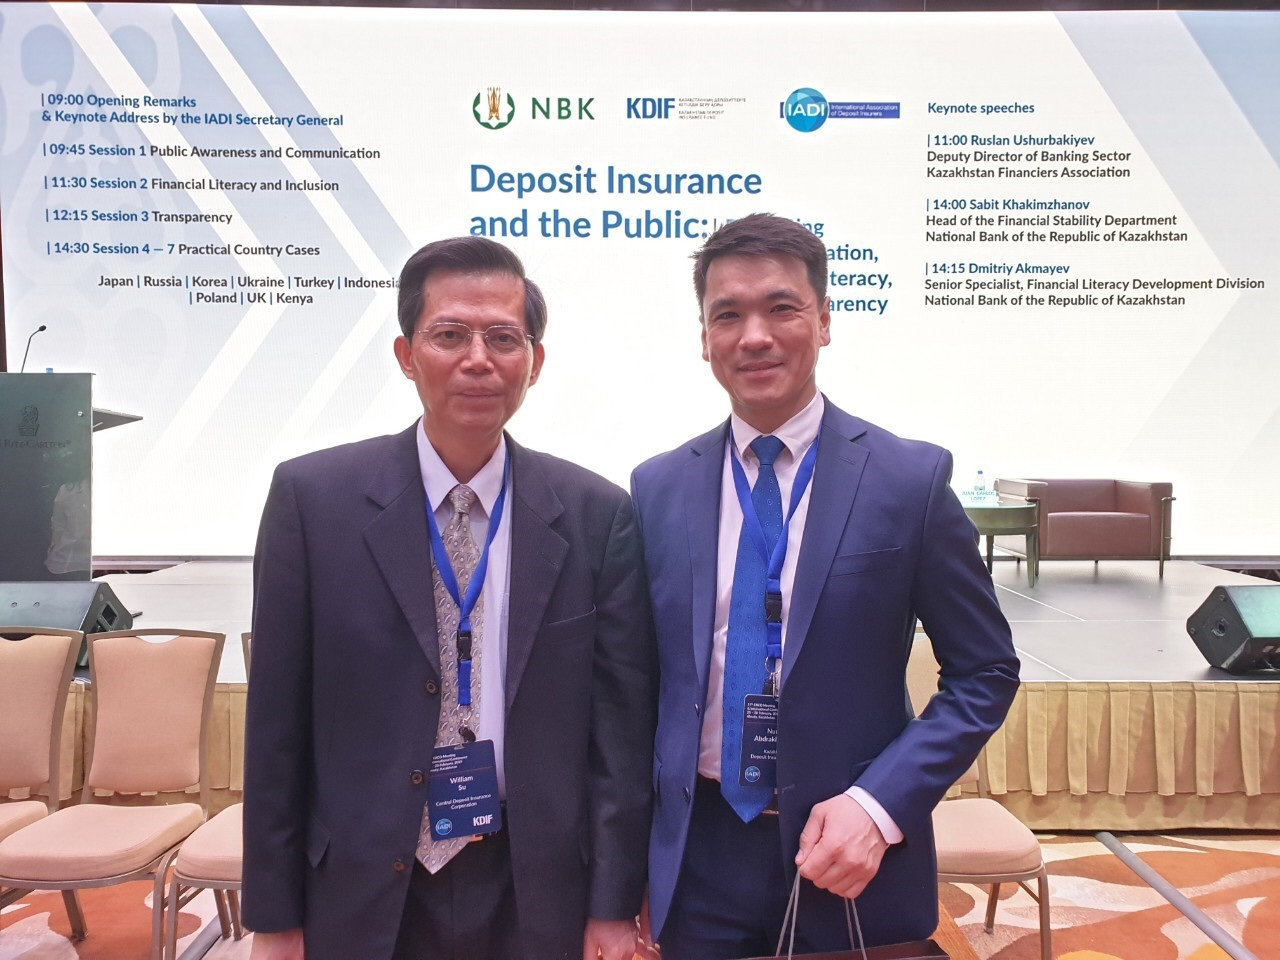 Photo of CDIC President William Su (left) and EXCO event host organization- the KDIF Chairman Mr. Nurlan Abdrakhmanov (right)